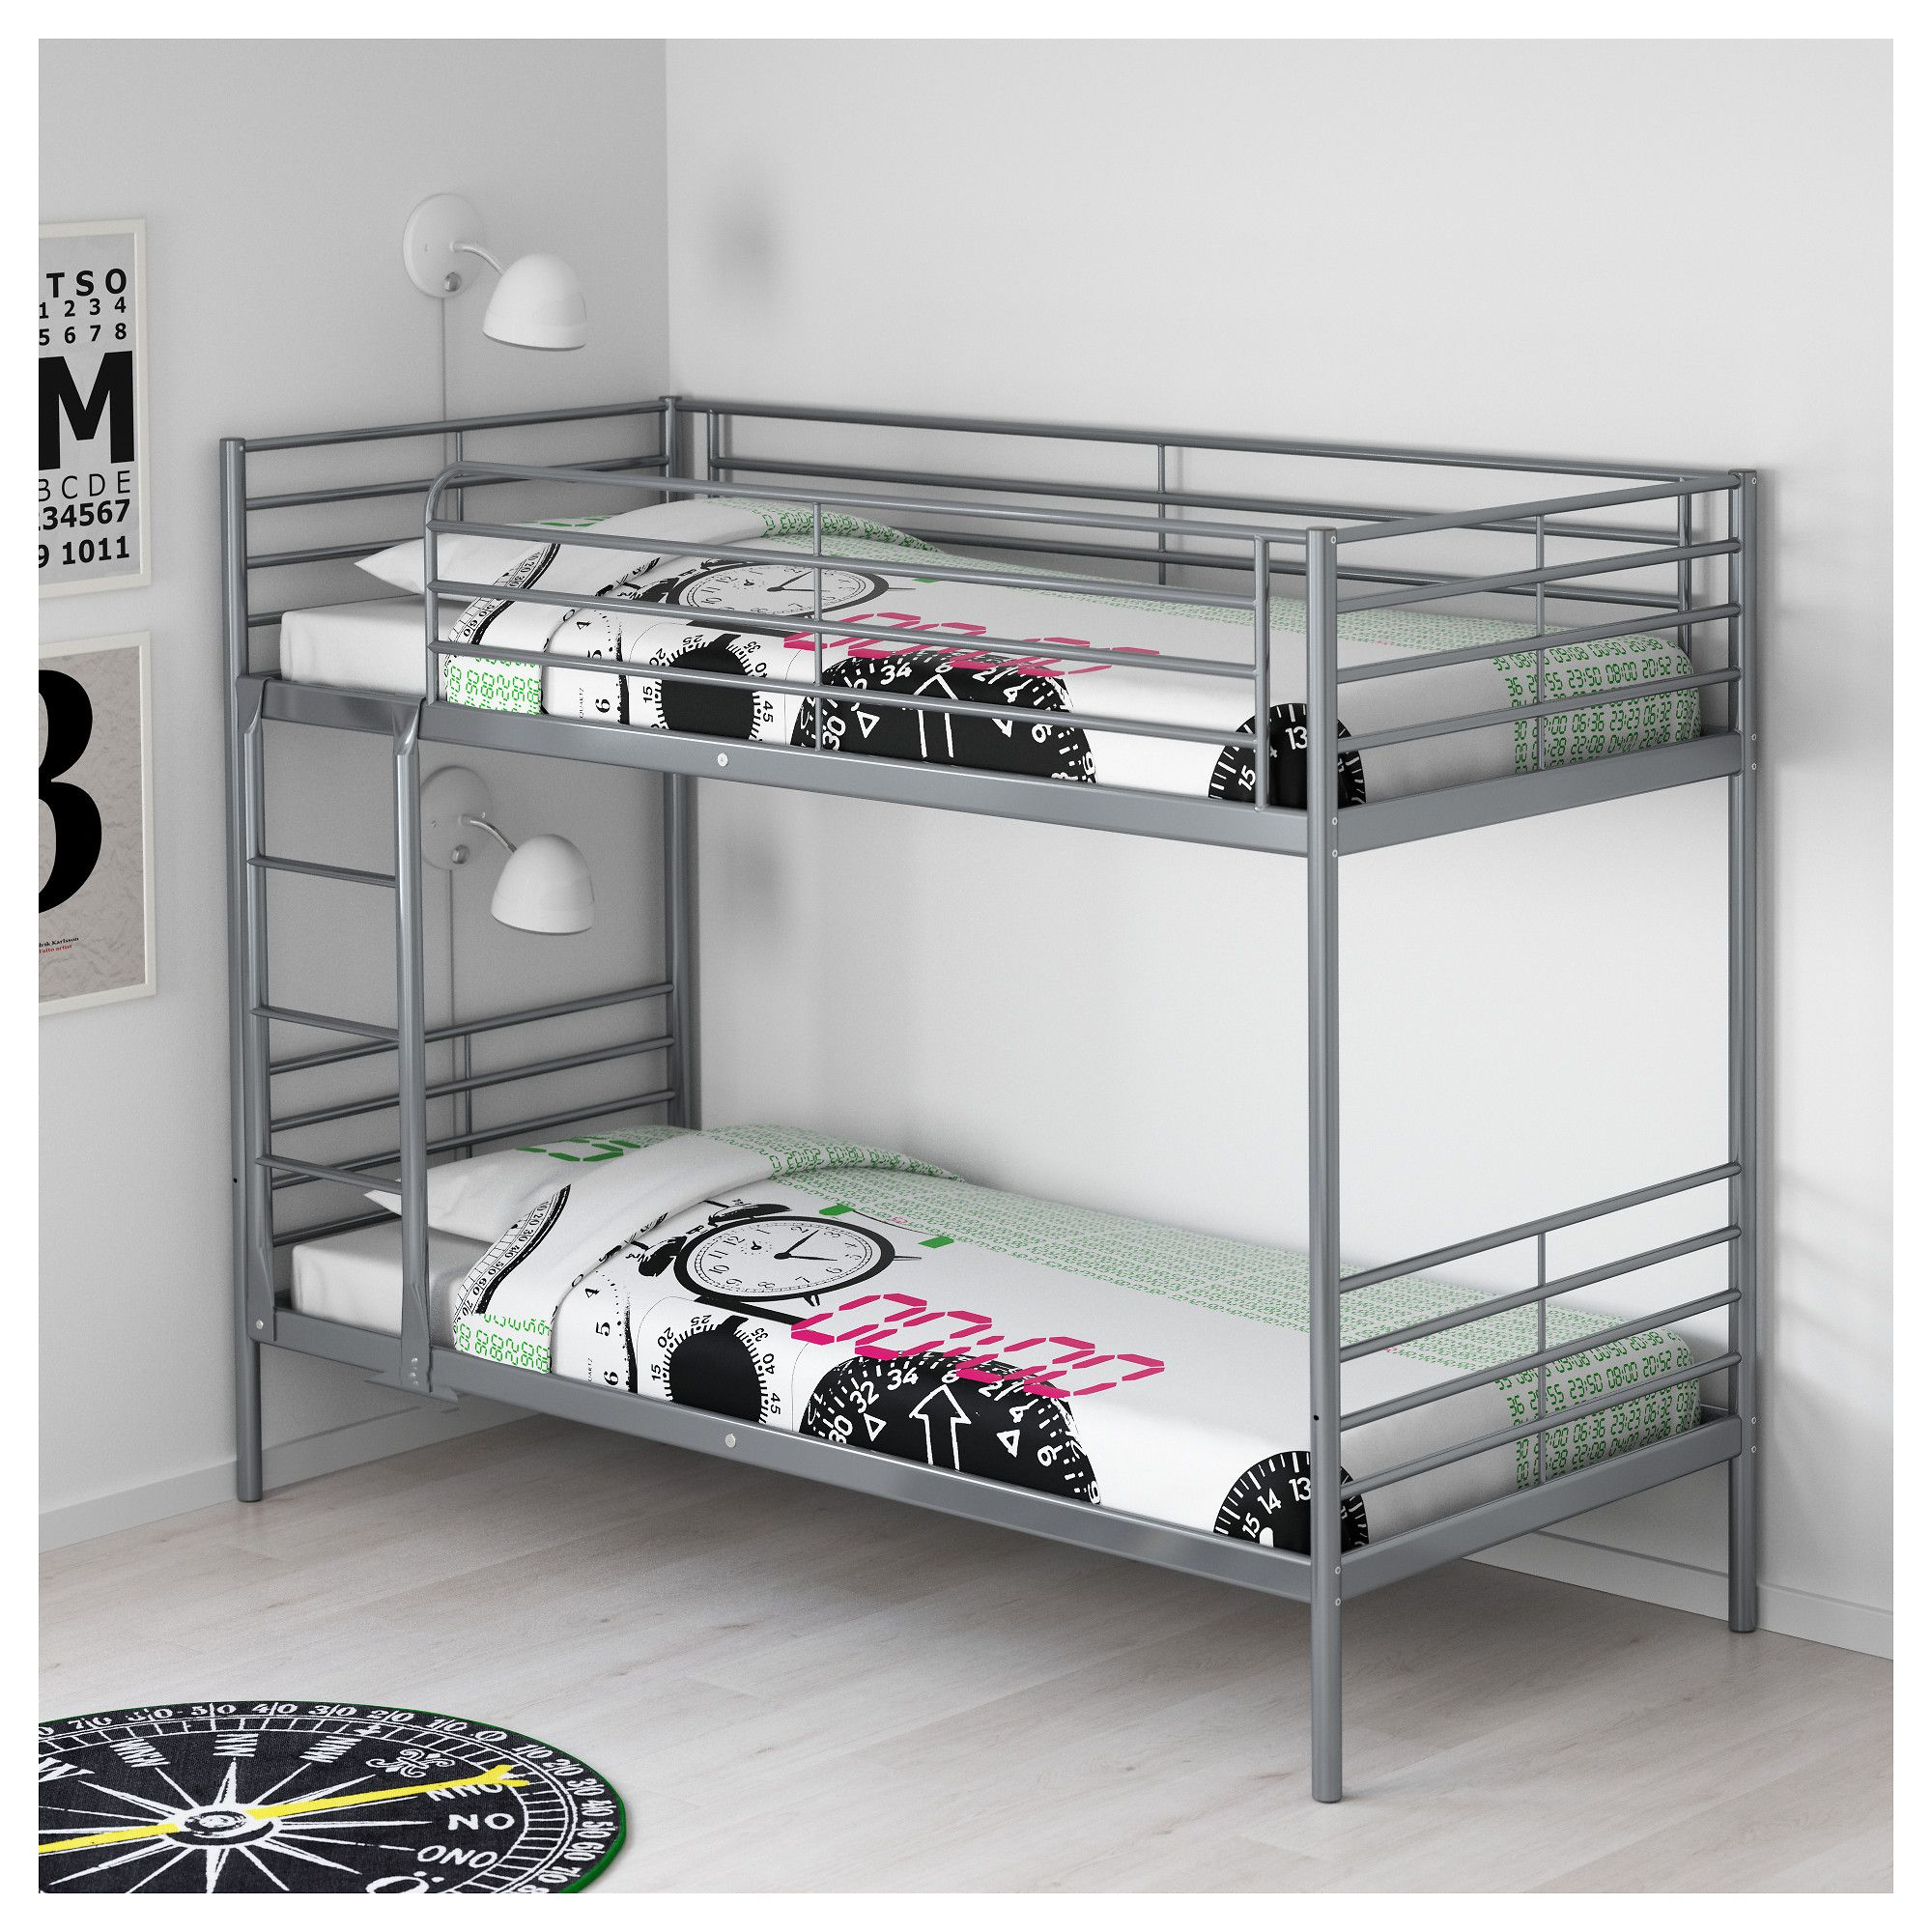 SVÄRTA Bunk bed frame, silver color